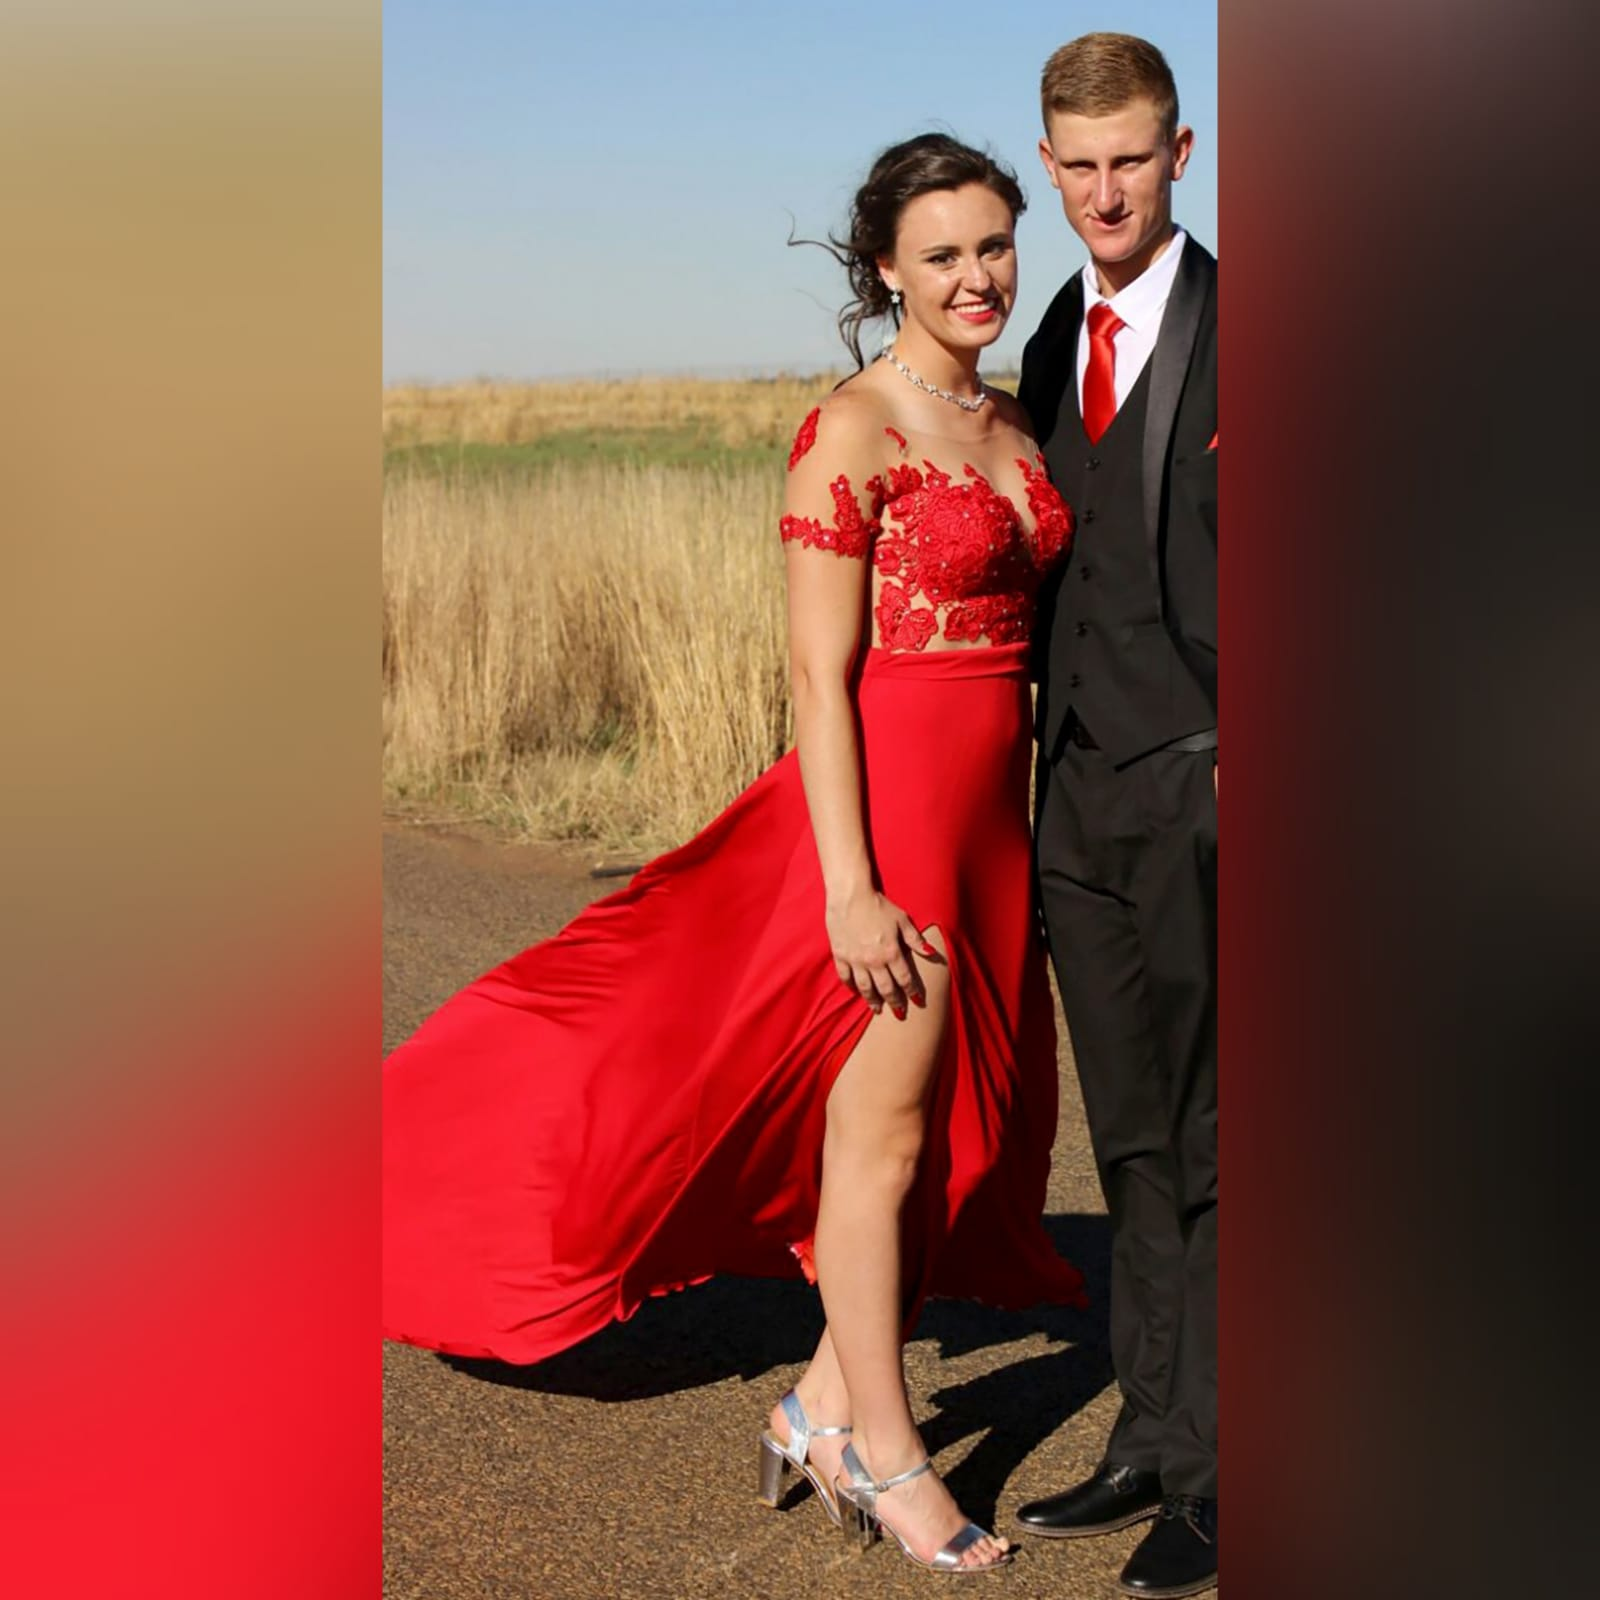 Red flowy lace bodice prom dress 7 red flowy lace bodice prom dress. With an illusion lace bodice detailed with silver beads and buttons. Evening dress with a slit and a train.